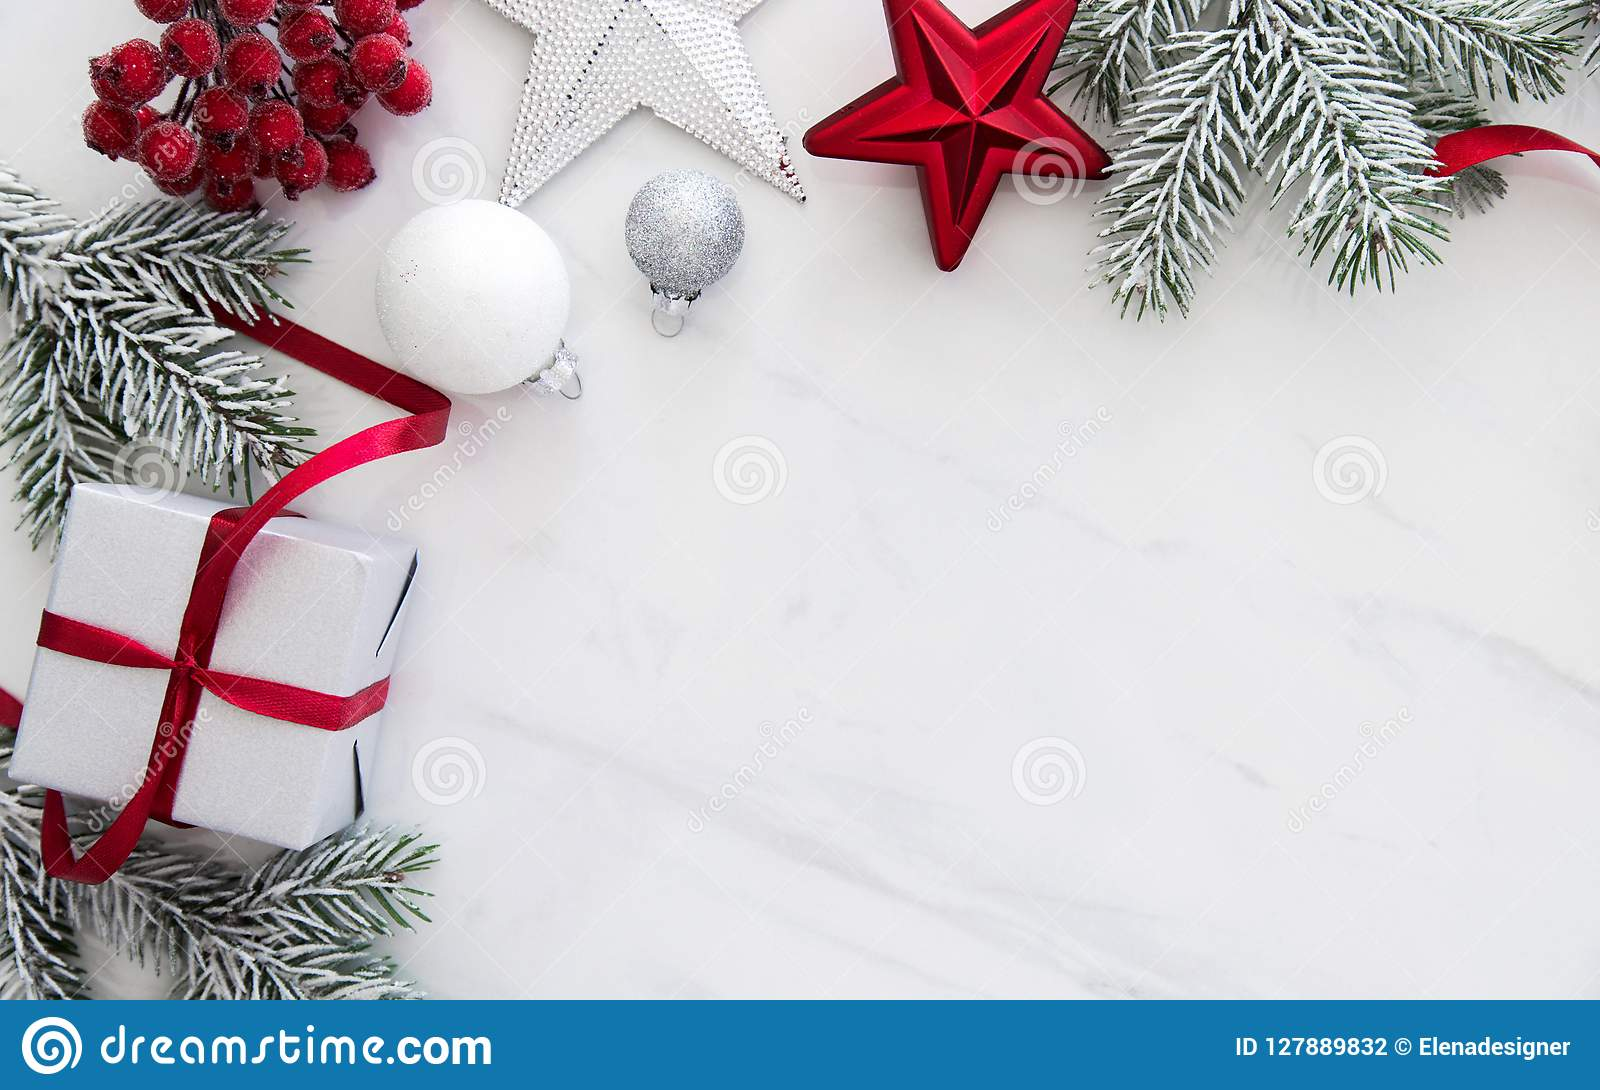 Holiday Background Or Greeting Card: Christmas Handmade Gift Boxes On White Marble Background